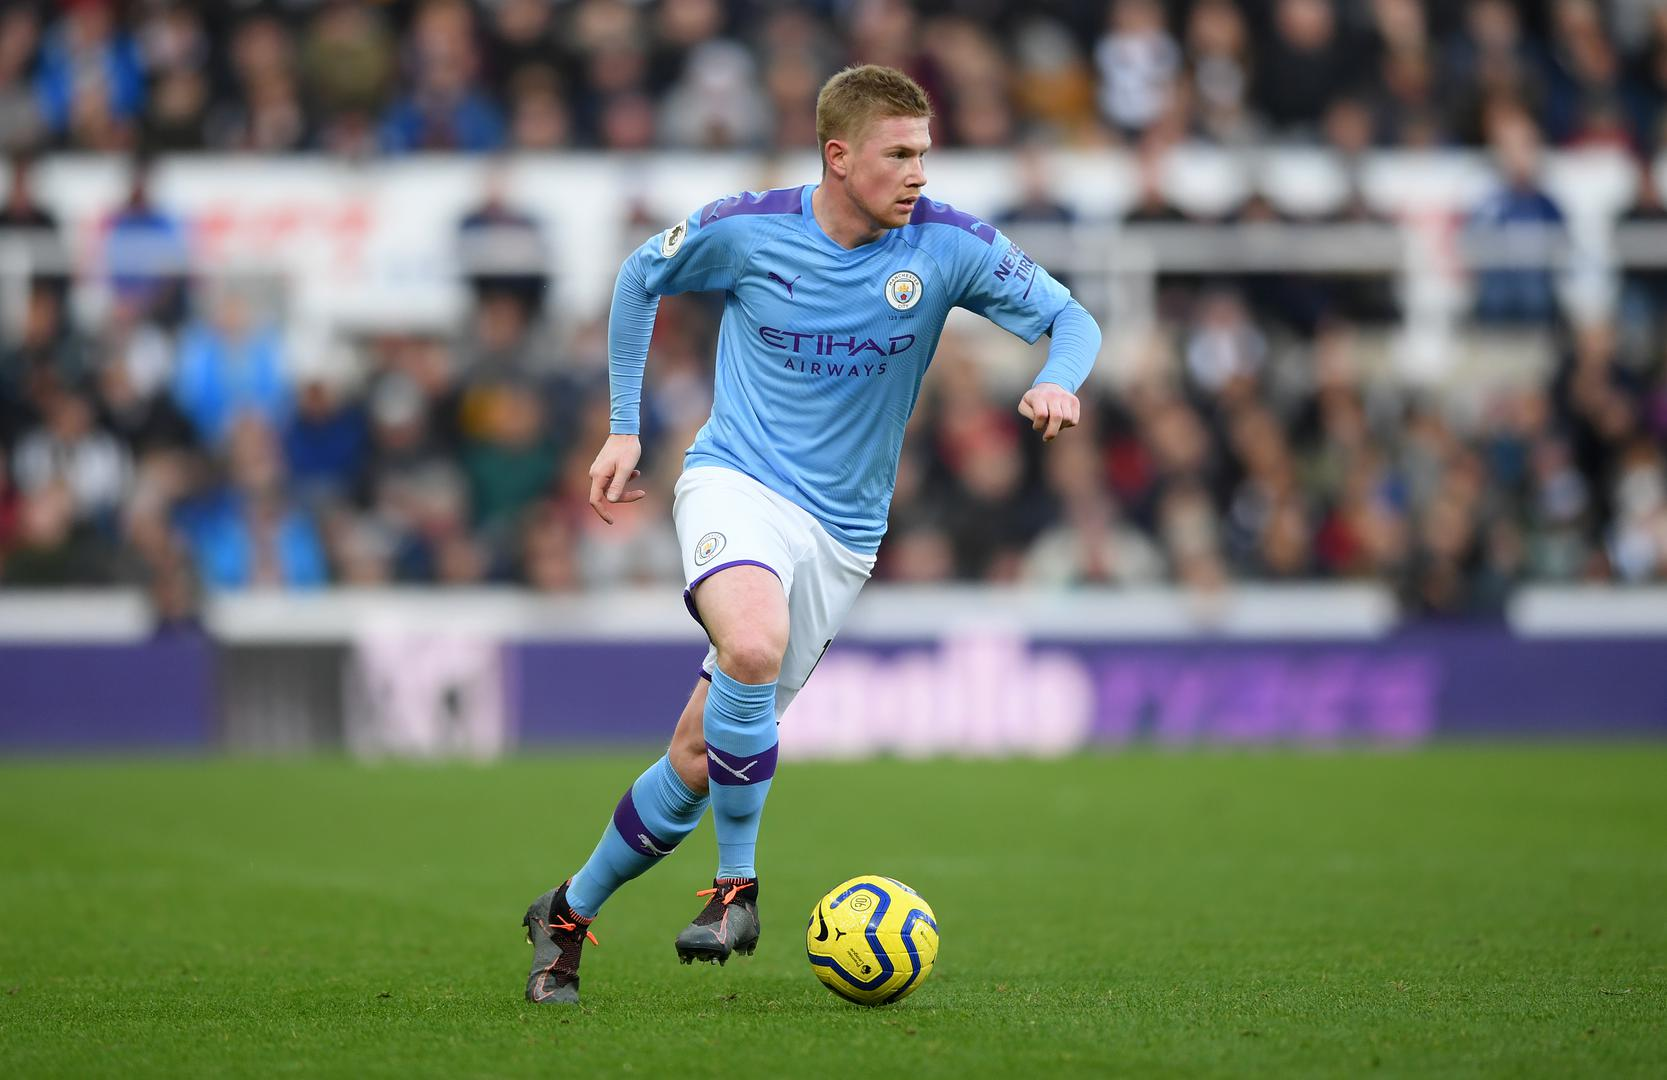 Kevin De Bruyne playing for Manchester City.,